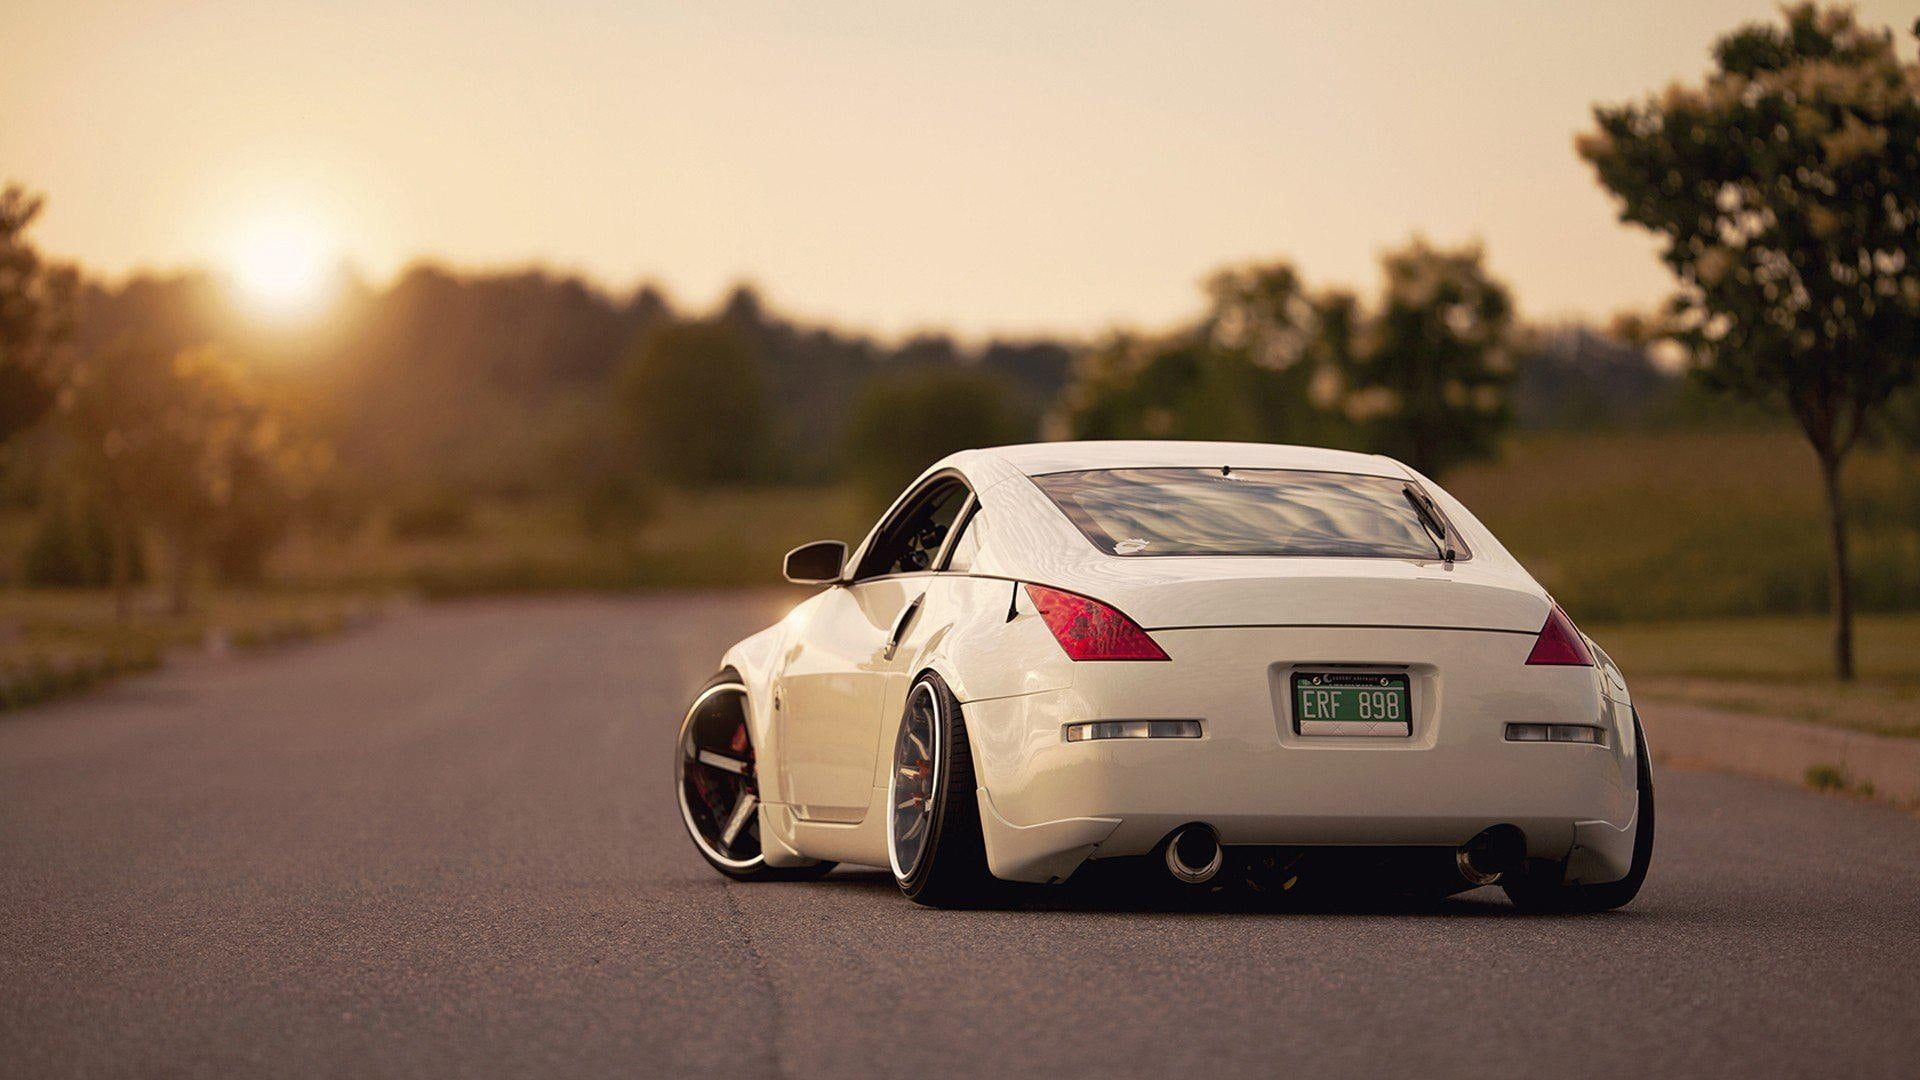 Awesome Nissan 350z Wallpaper High Resolution Nissan 350z Nissan Cars Nissan